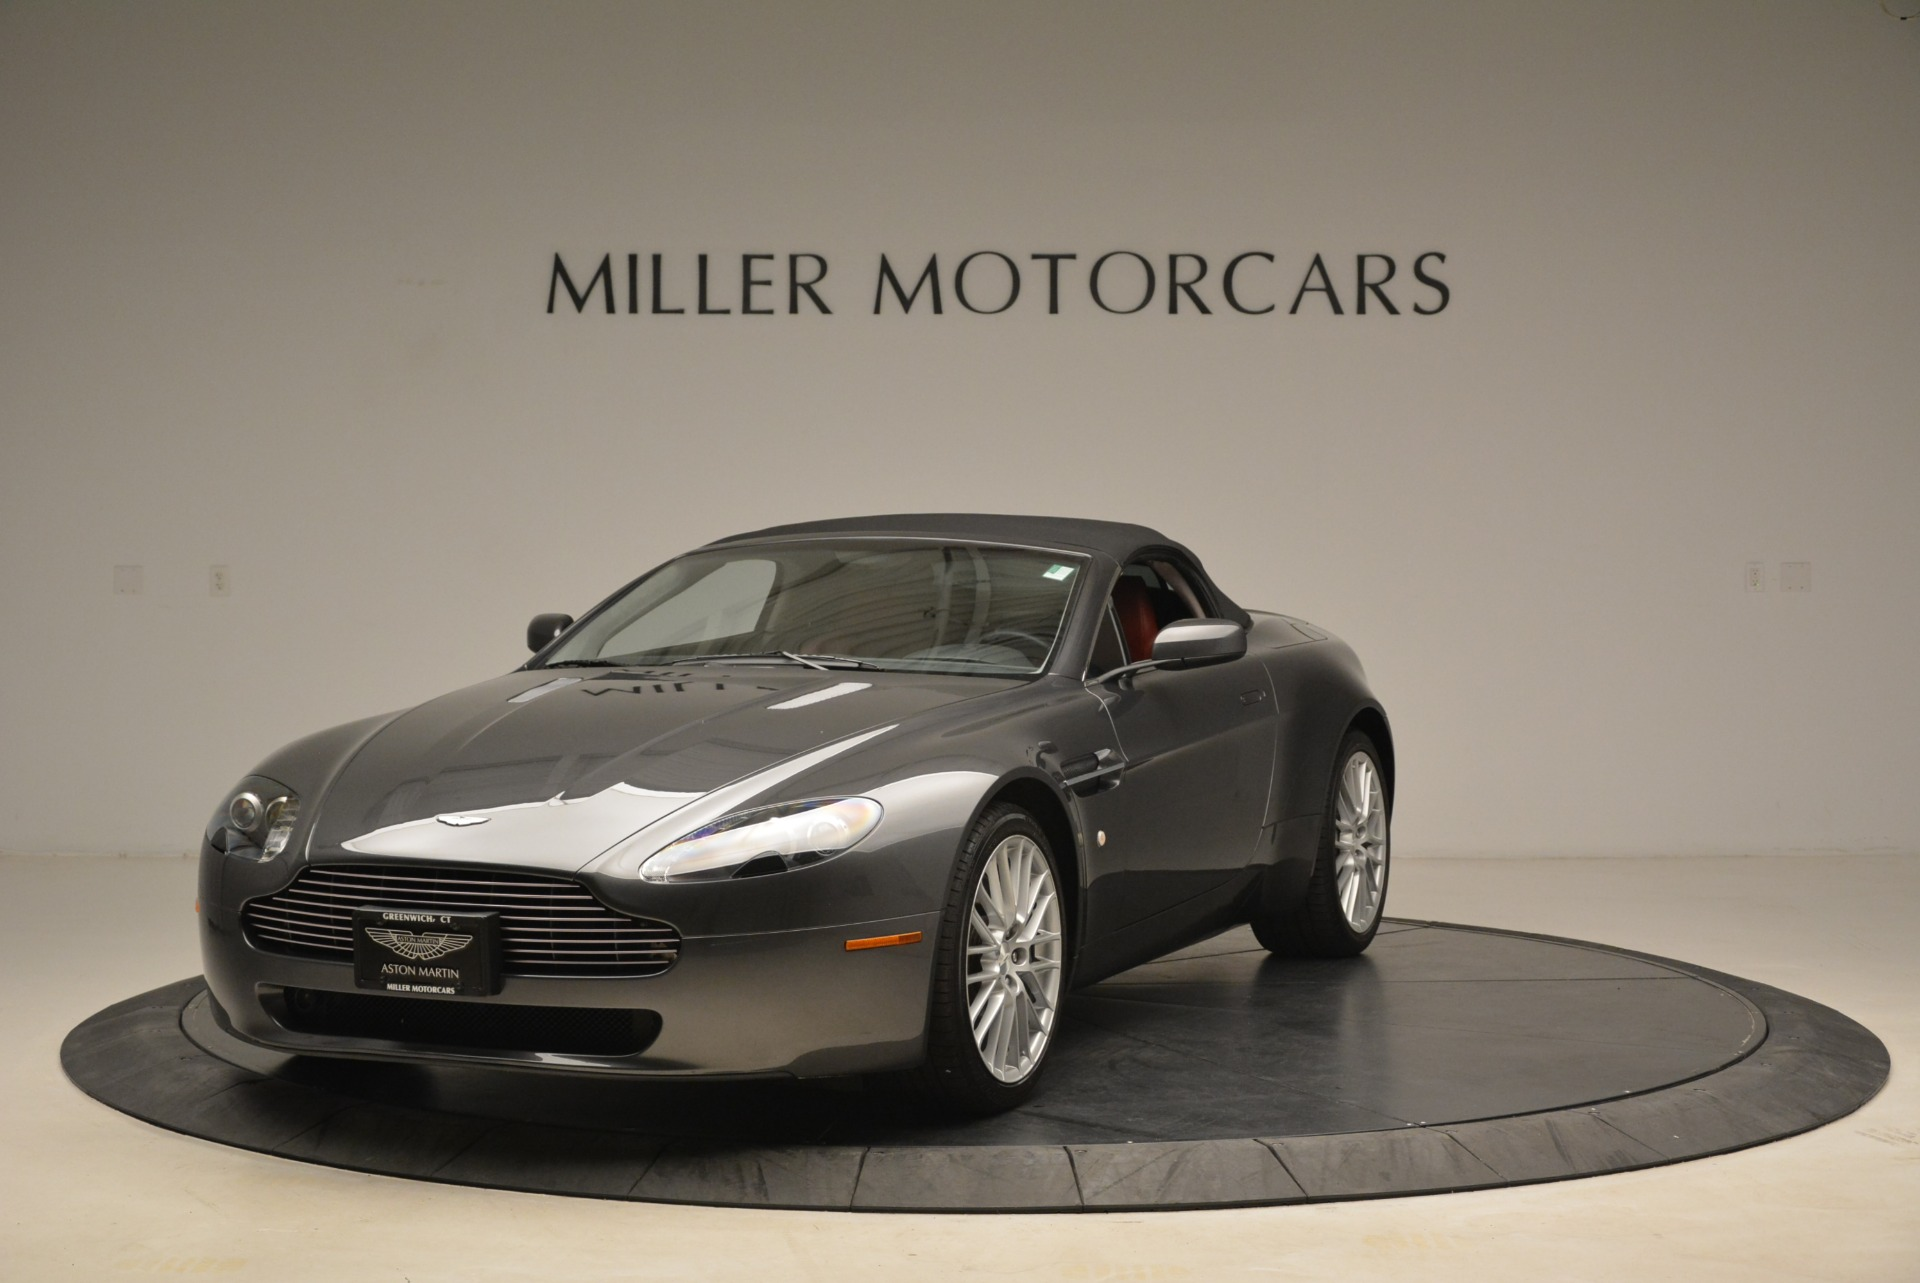 Used 2009 Aston Martin V8 Vantage Roadster For Sale In Westport, CT 2123_p13